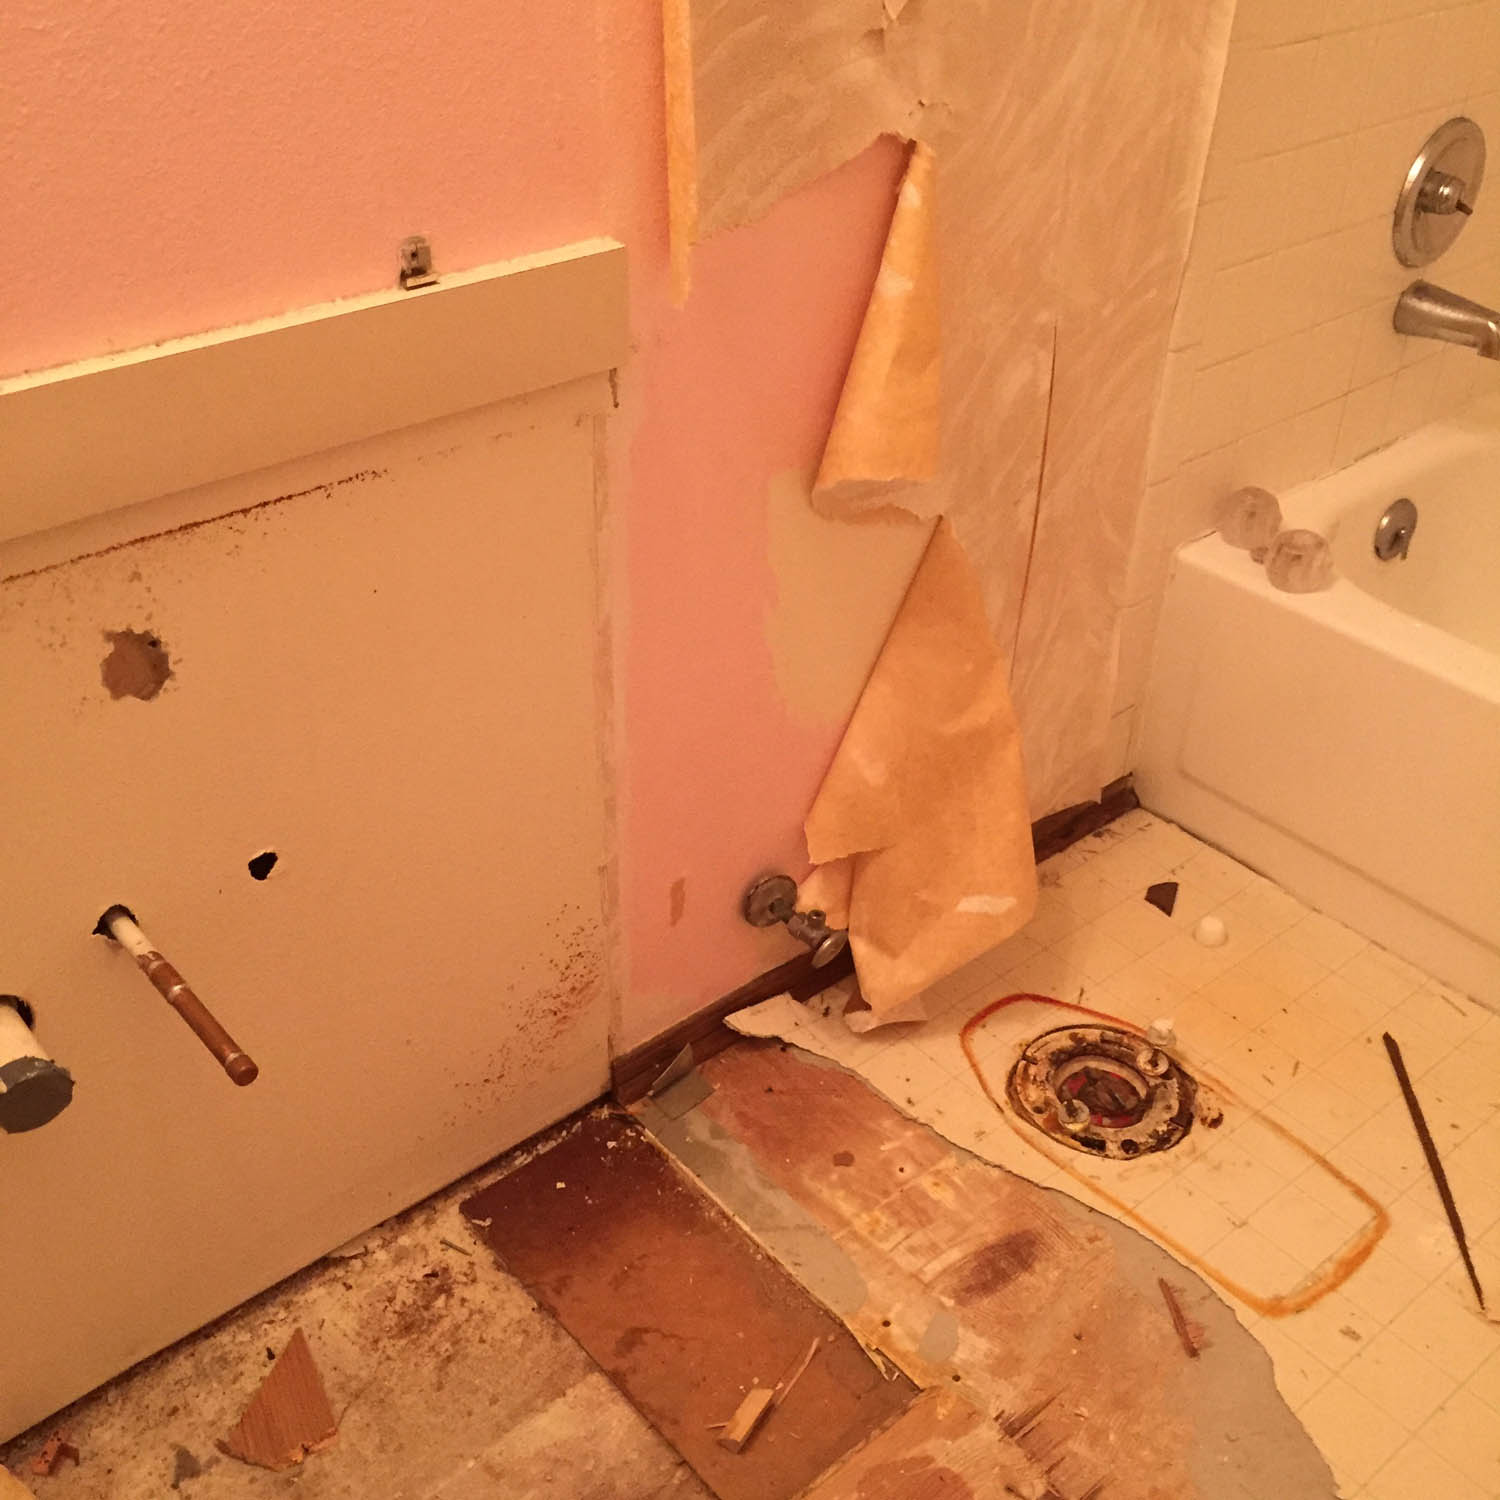 wallpaper removal in the bathroom